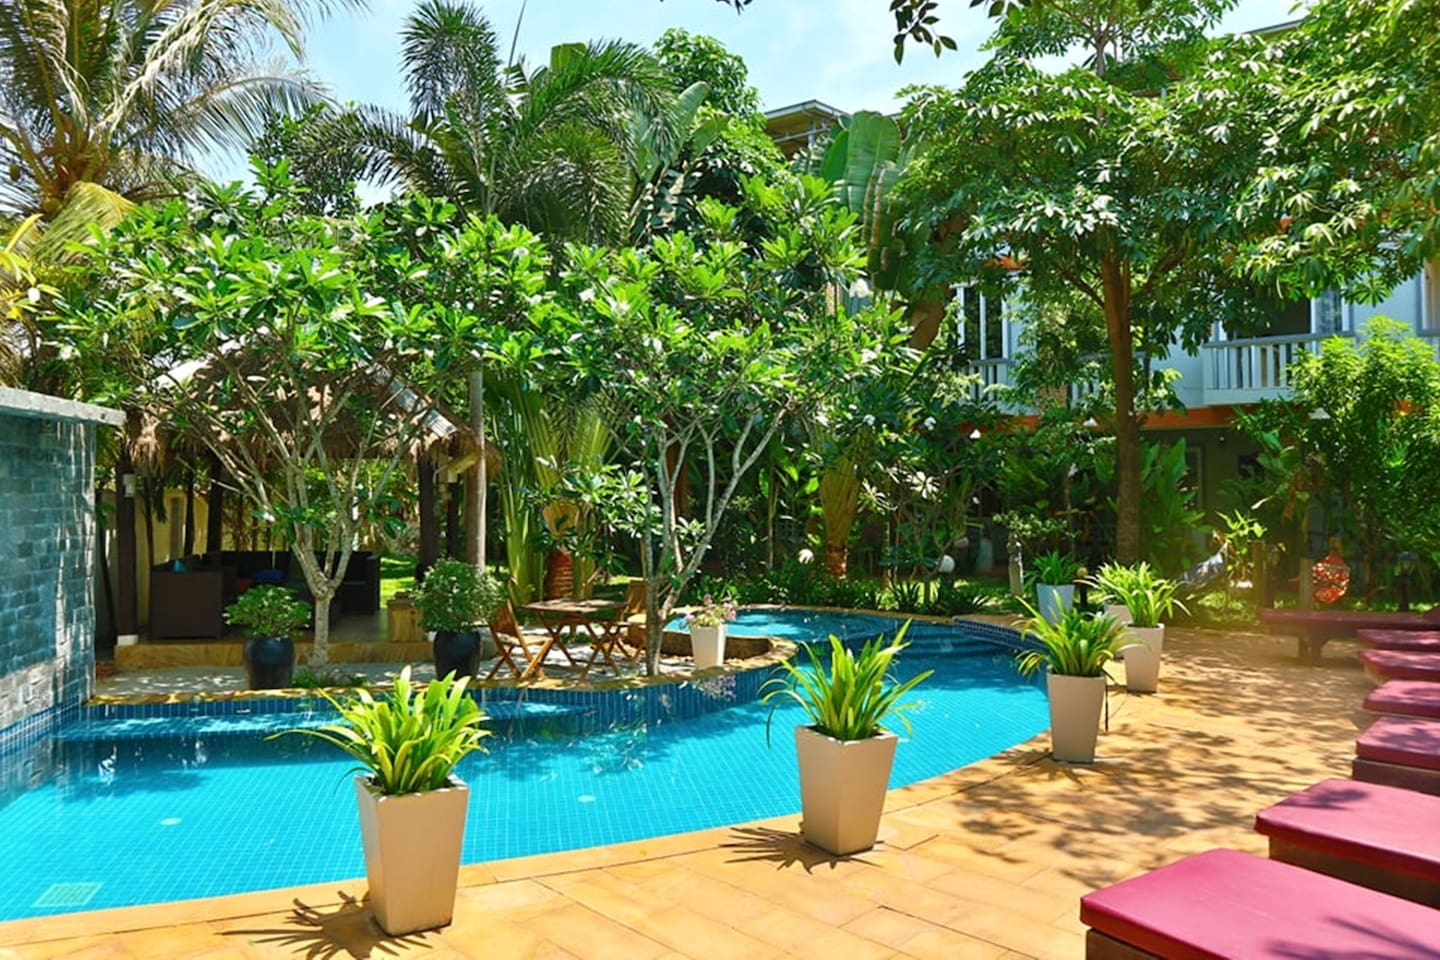 OUR POOL AREA sou round by green